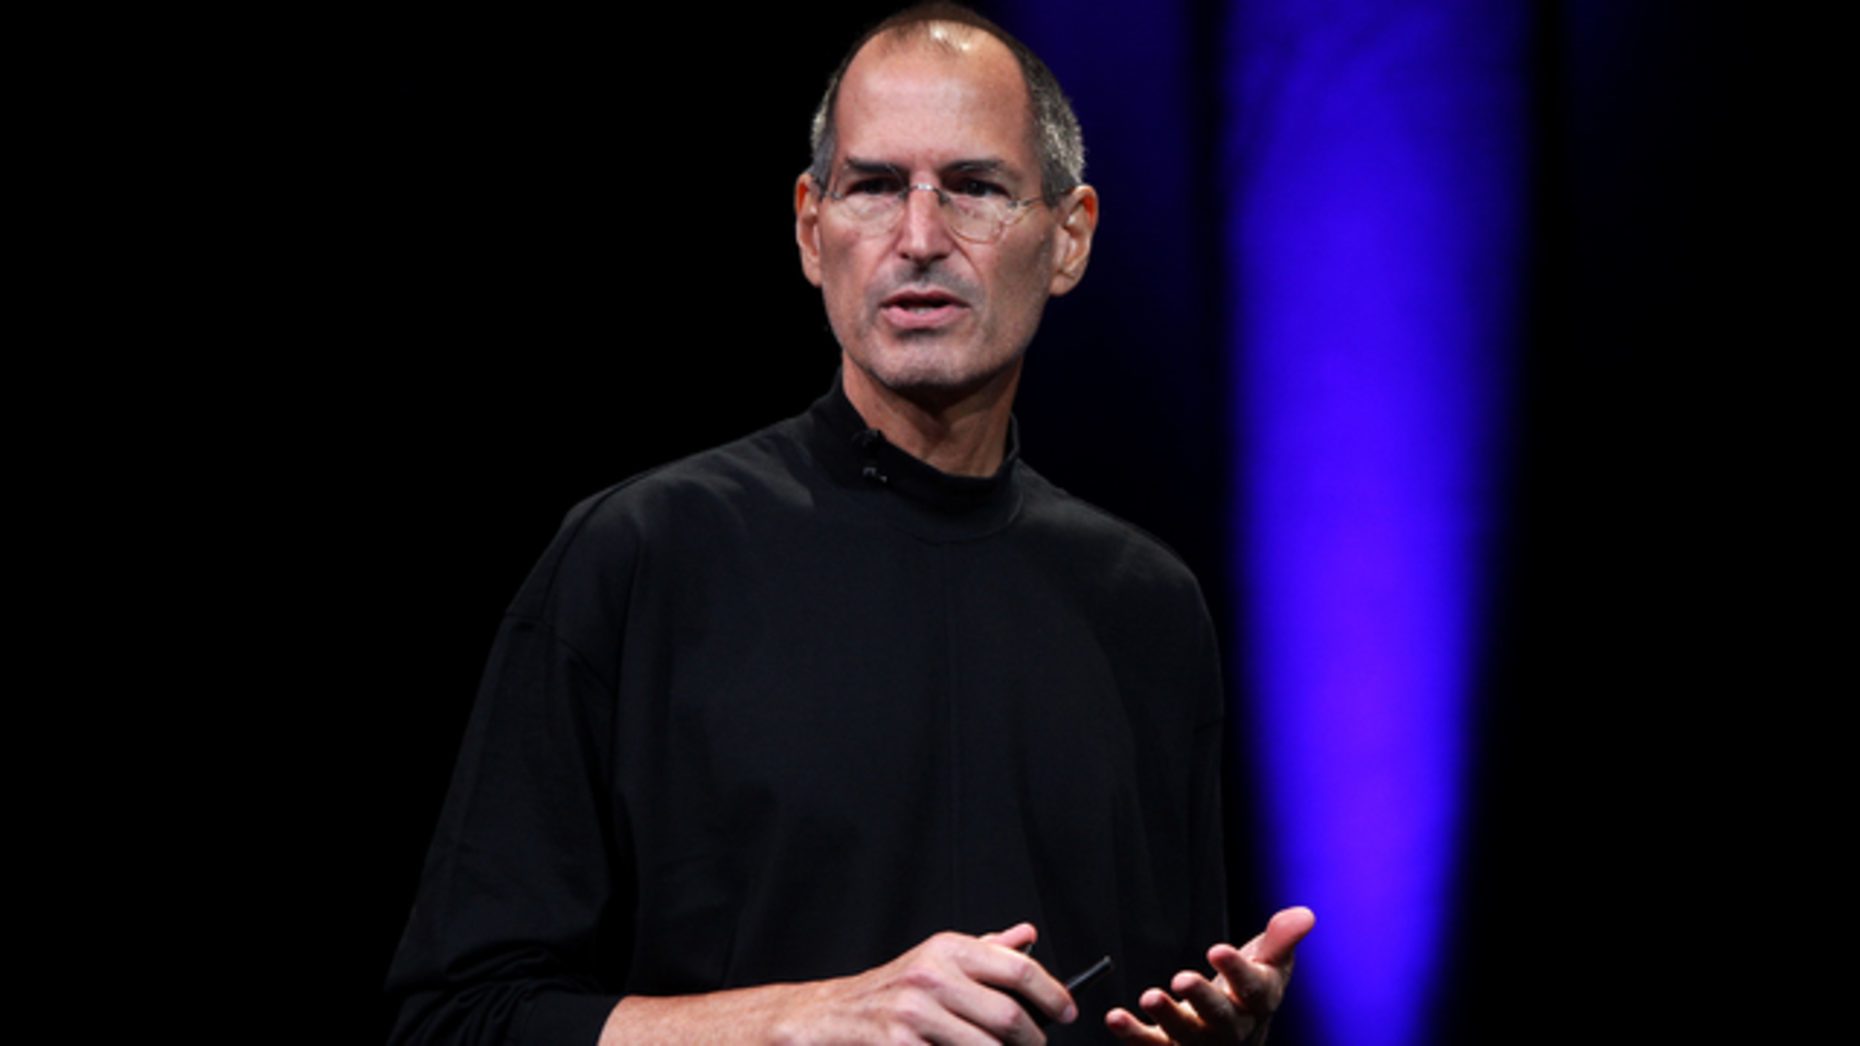 Steve Jobs in 2008. Photo by Bloomberg.